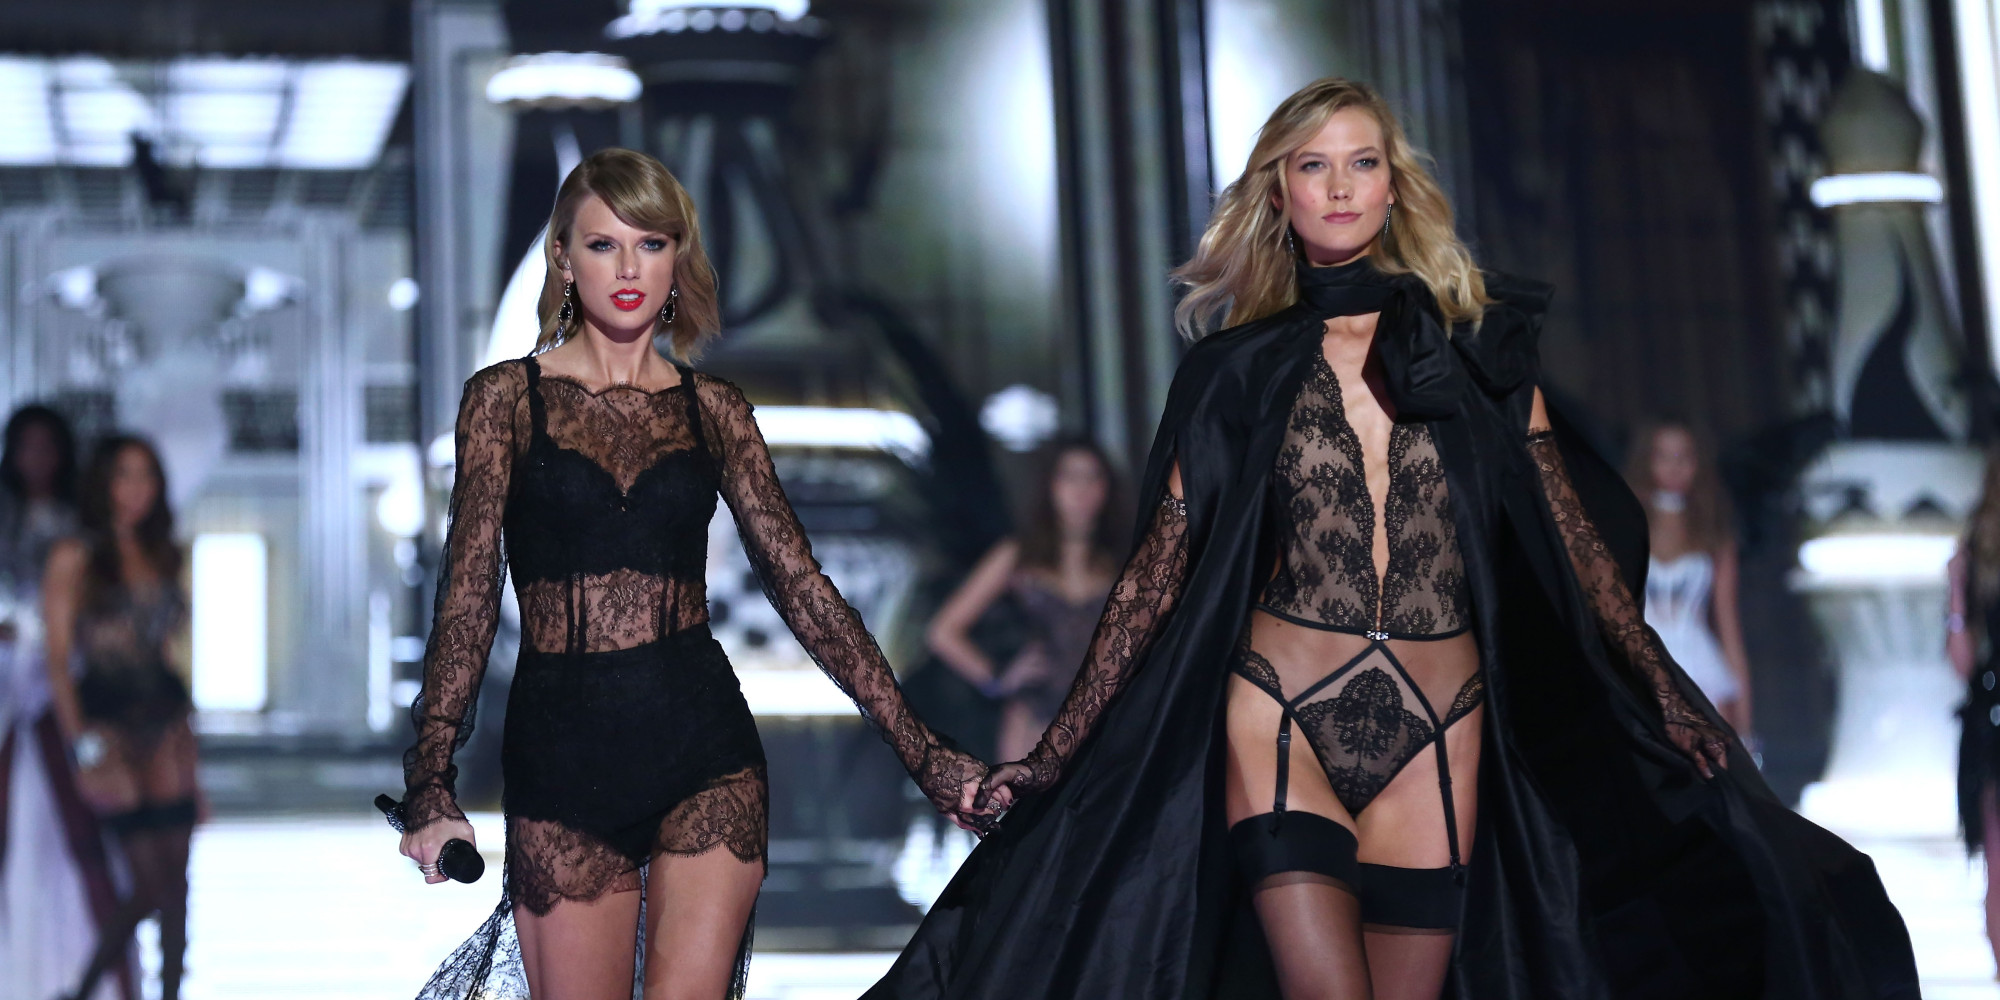 LONDON, ENGLAND - DECEMBER 02:  Taylor Swift and Karlie Kloss walk the runway at the annual Victoria's Secret fashion show at Earls Court on December 2, 2014 in London, England.  (Photo by Tim P. Whitby/Getty Images)